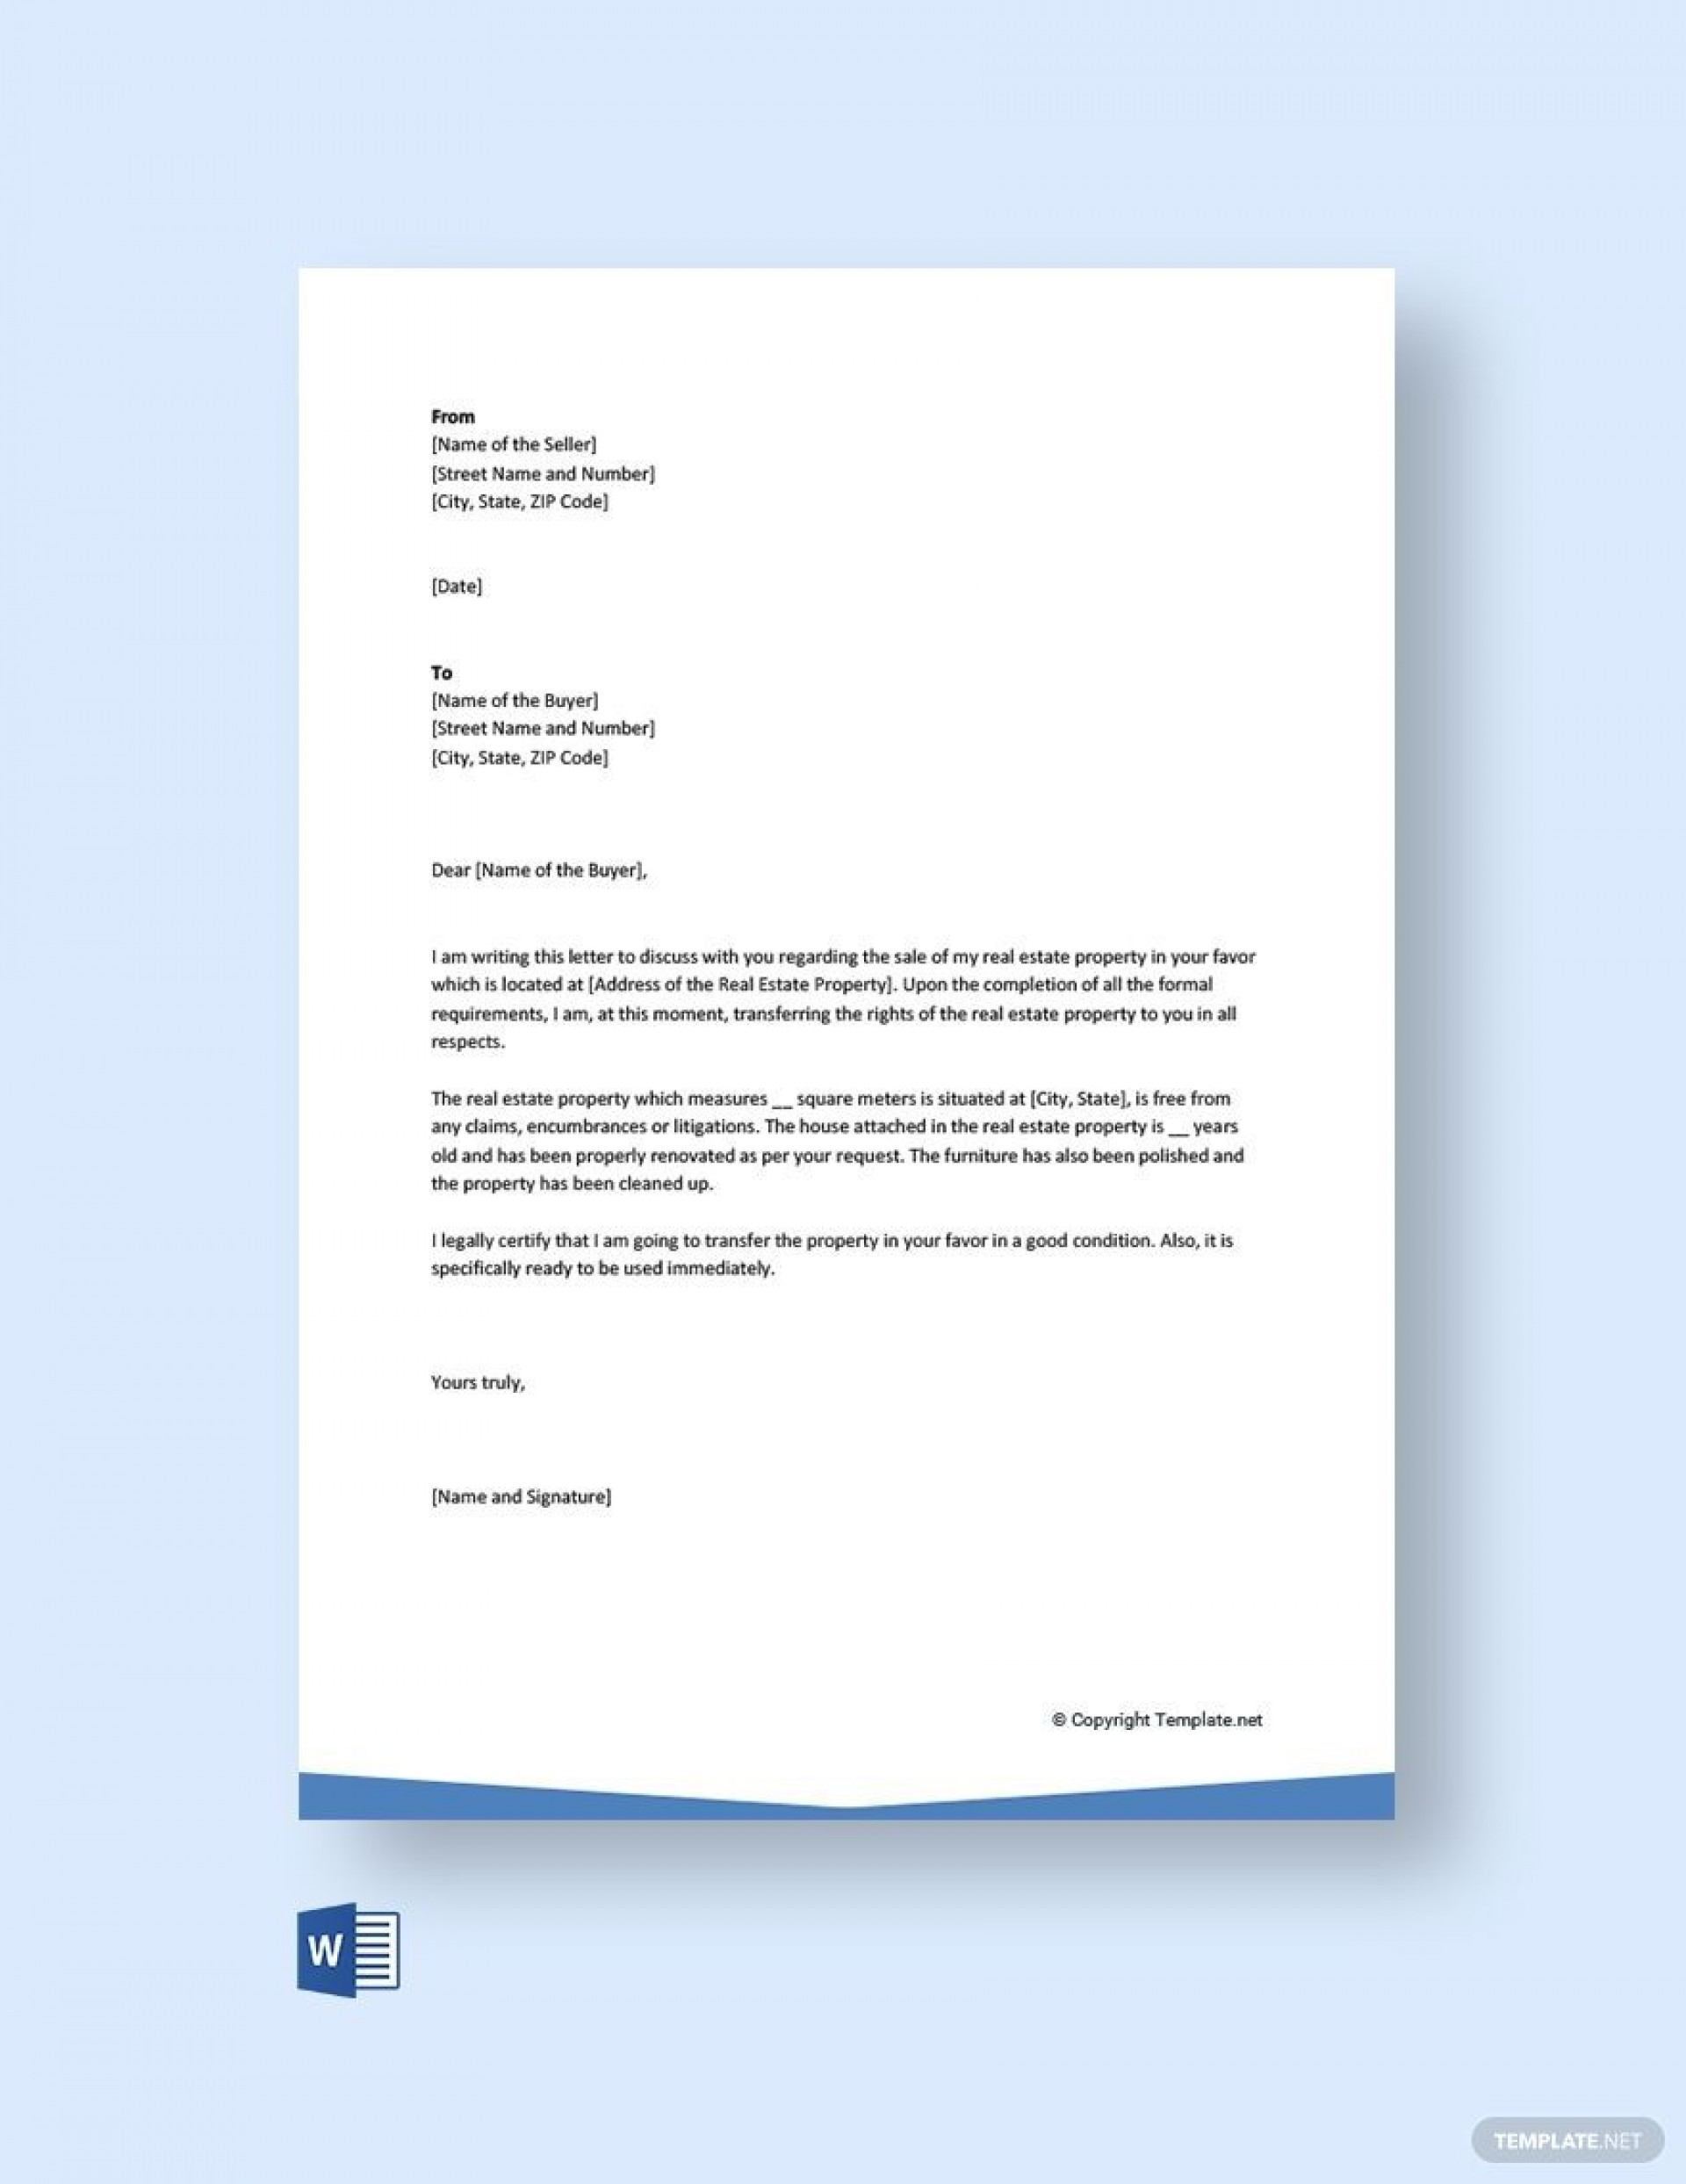 004 Exceptional Free Letter Writing Template Download High Definition 1920